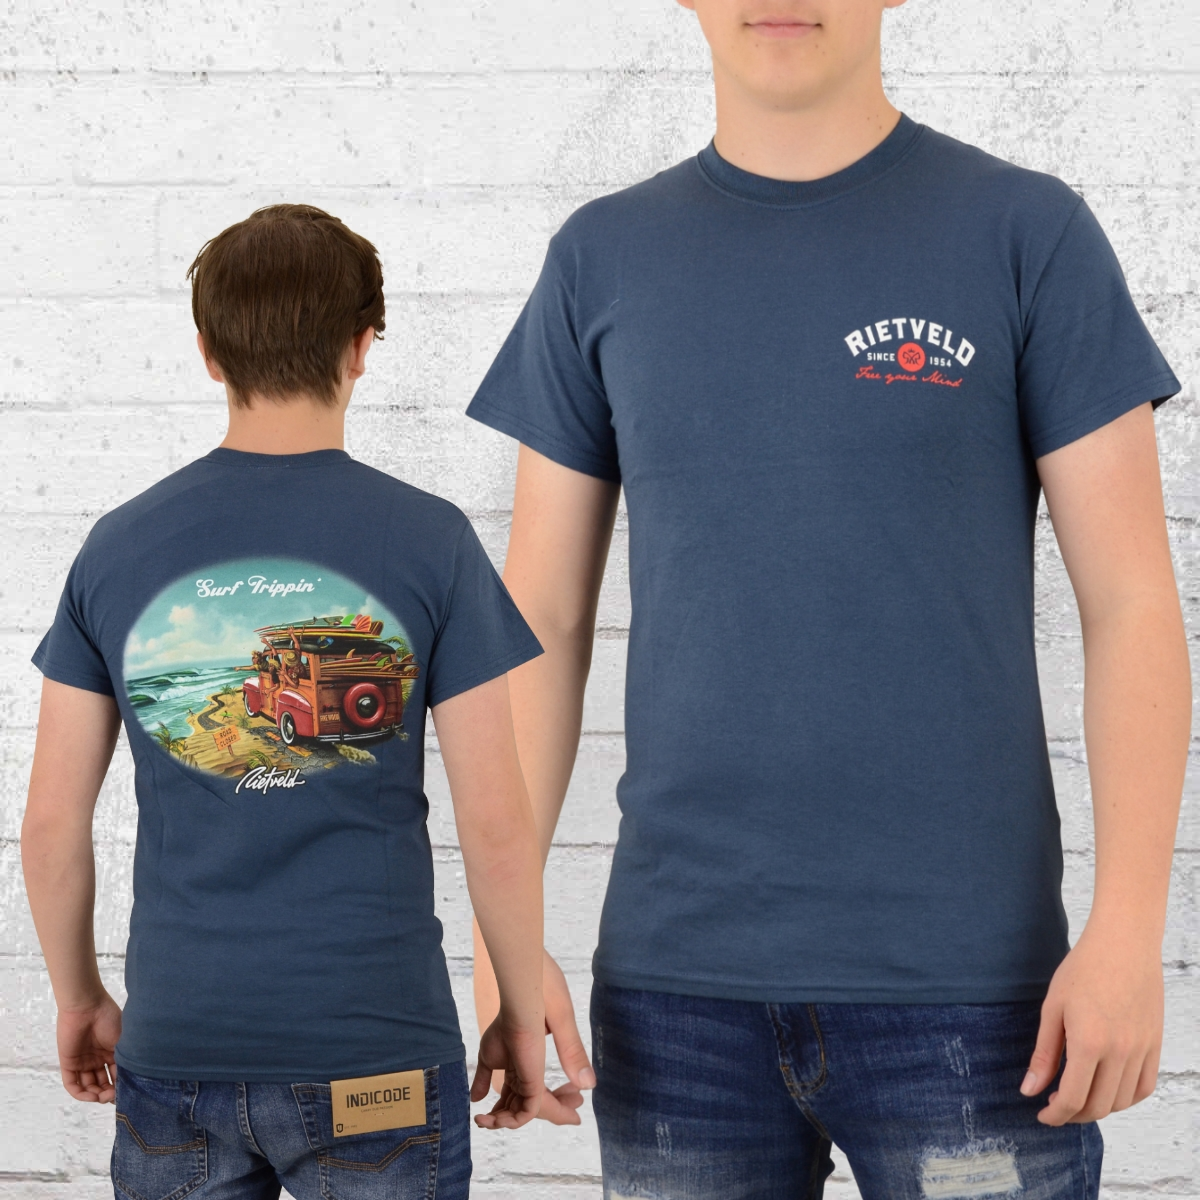 f5fd5d4bf Order now | Rietveld Mens T-Shirt Surf Trippin navy blue